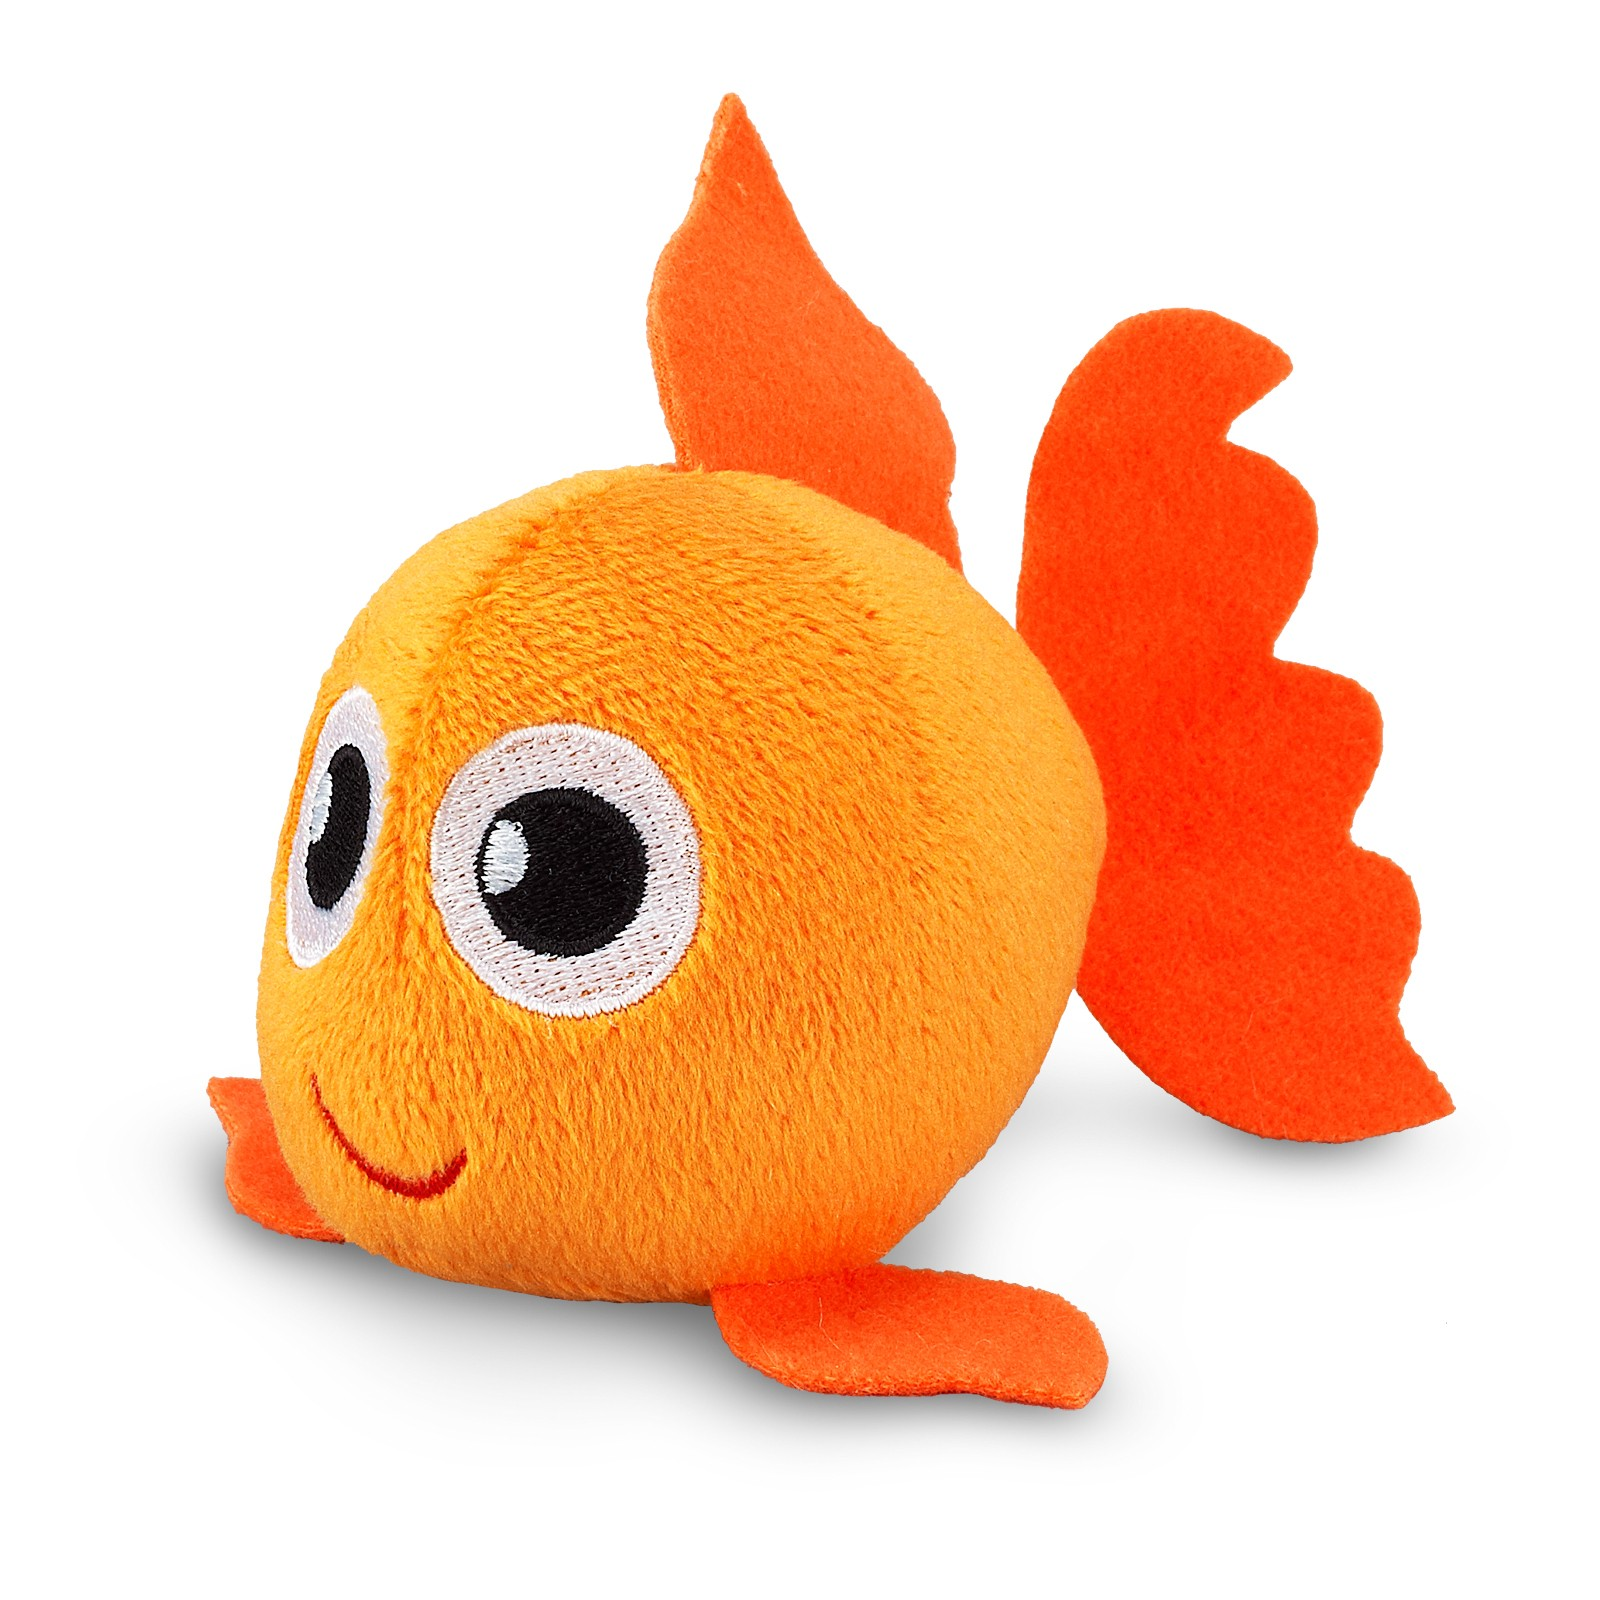 Cute Goldfish - Fully Customisable Plush